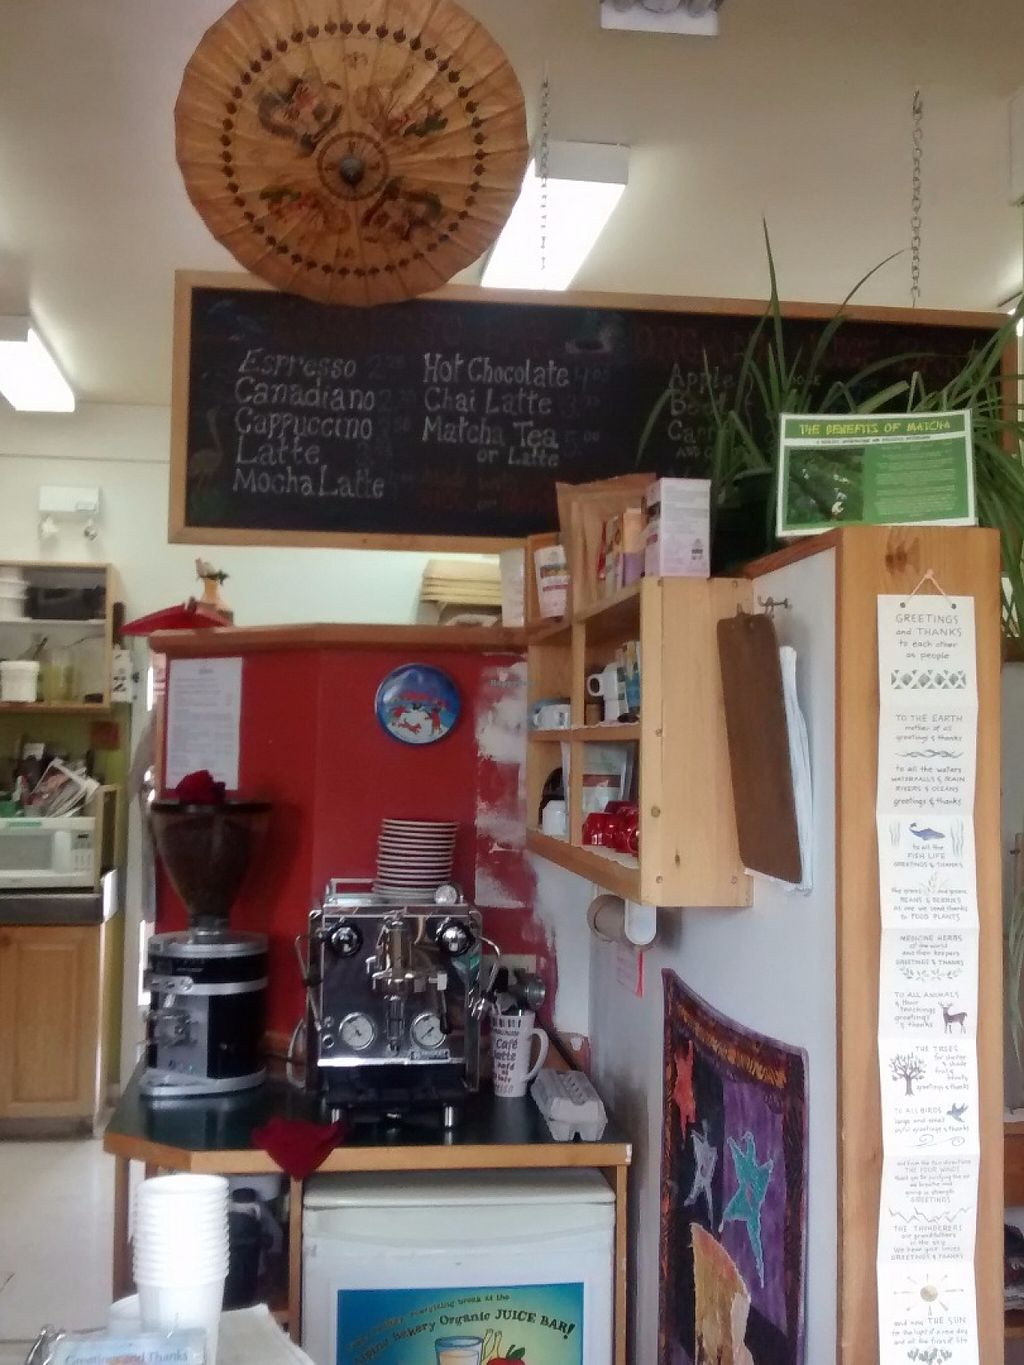 """Photo of Alpine Bakery  by <a href=""""/members/profile/QuothTheRaven"""">QuothTheRaven</a> <br/>Menu <br/> June 17, 2016  - <a href='/contact/abuse/image/15475/154395'>Report</a>"""